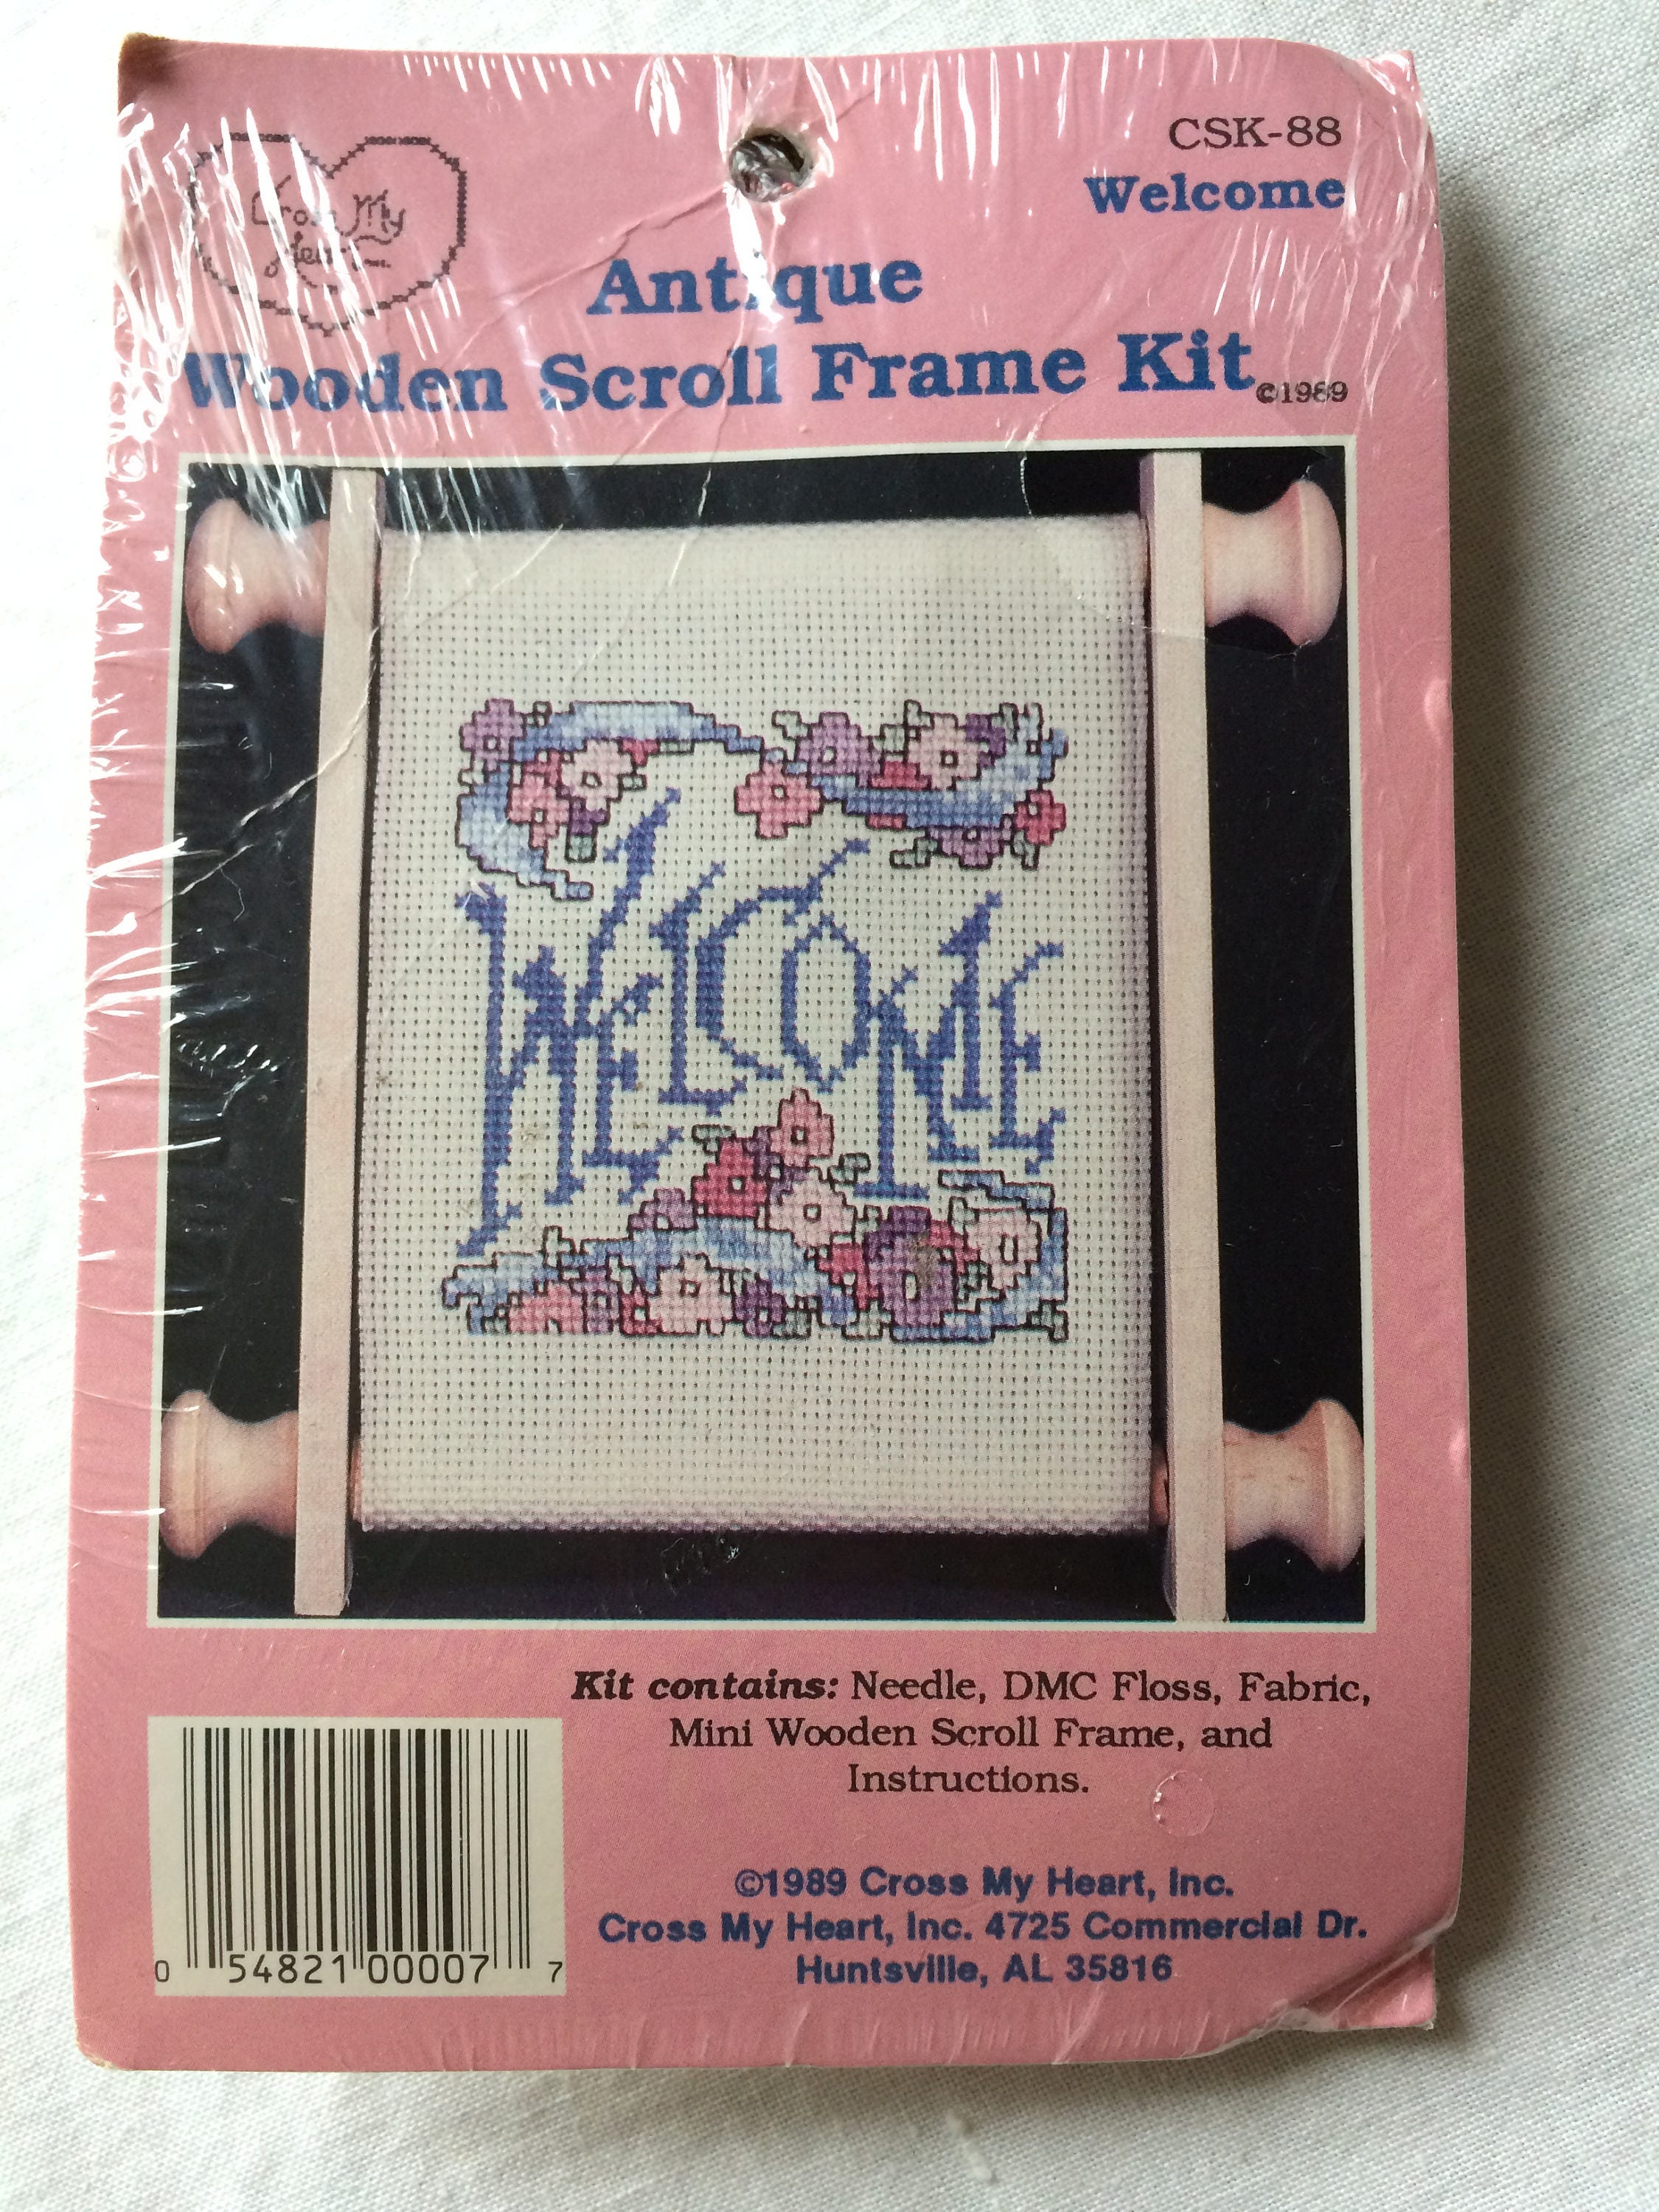 New Wooden Scroll Frame Counted Cross Stitch Kit Welcome by Cross My ...